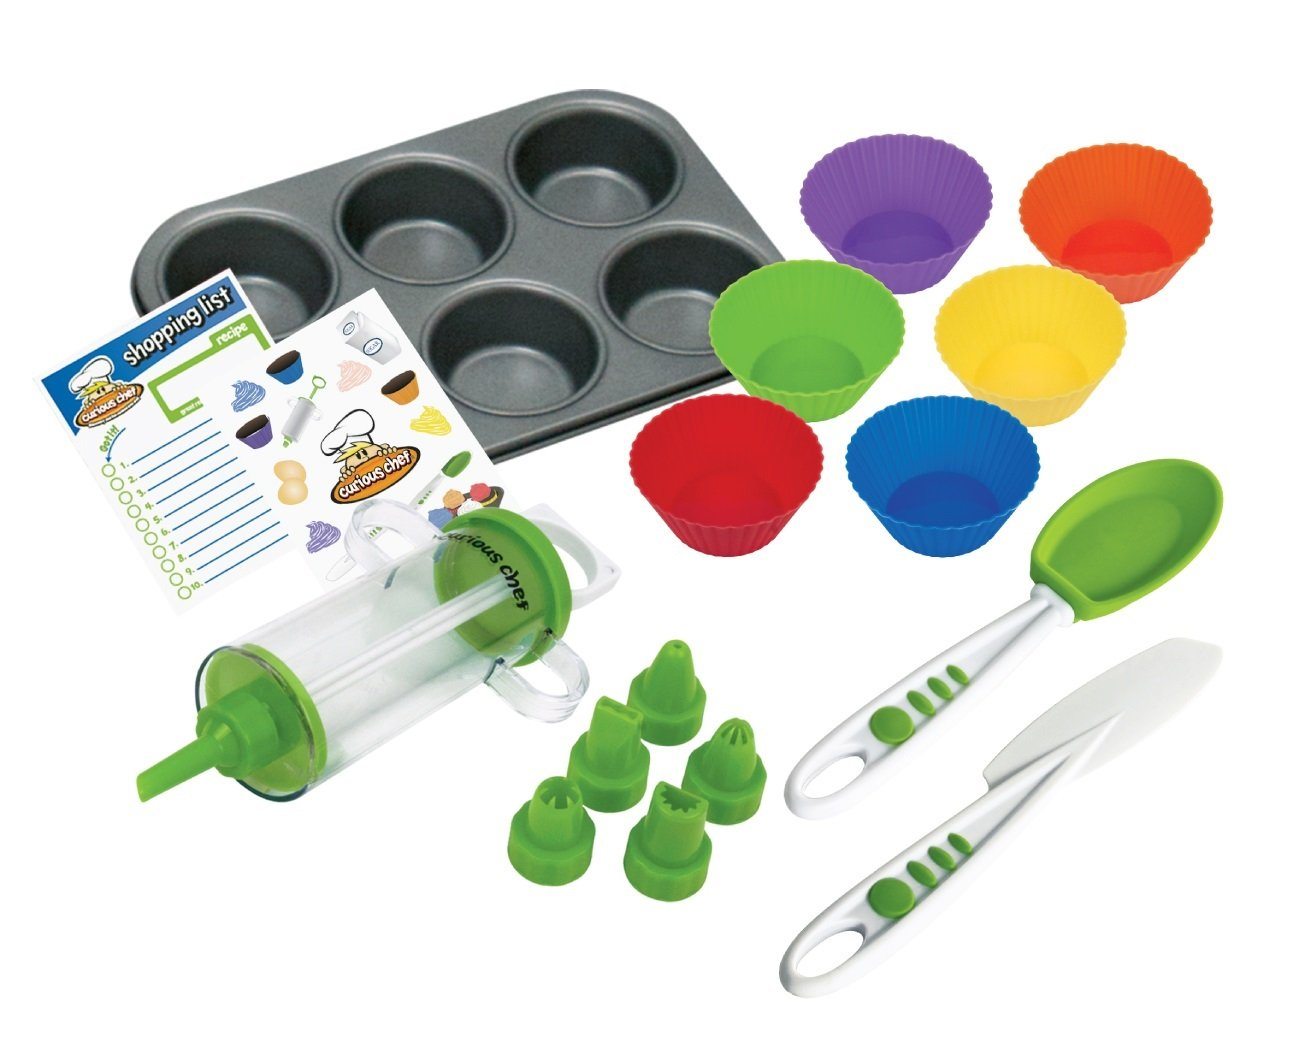 Curious Chef TCC50165 16-Piece Cupcake and Decorating Kit, Child, Multicolored